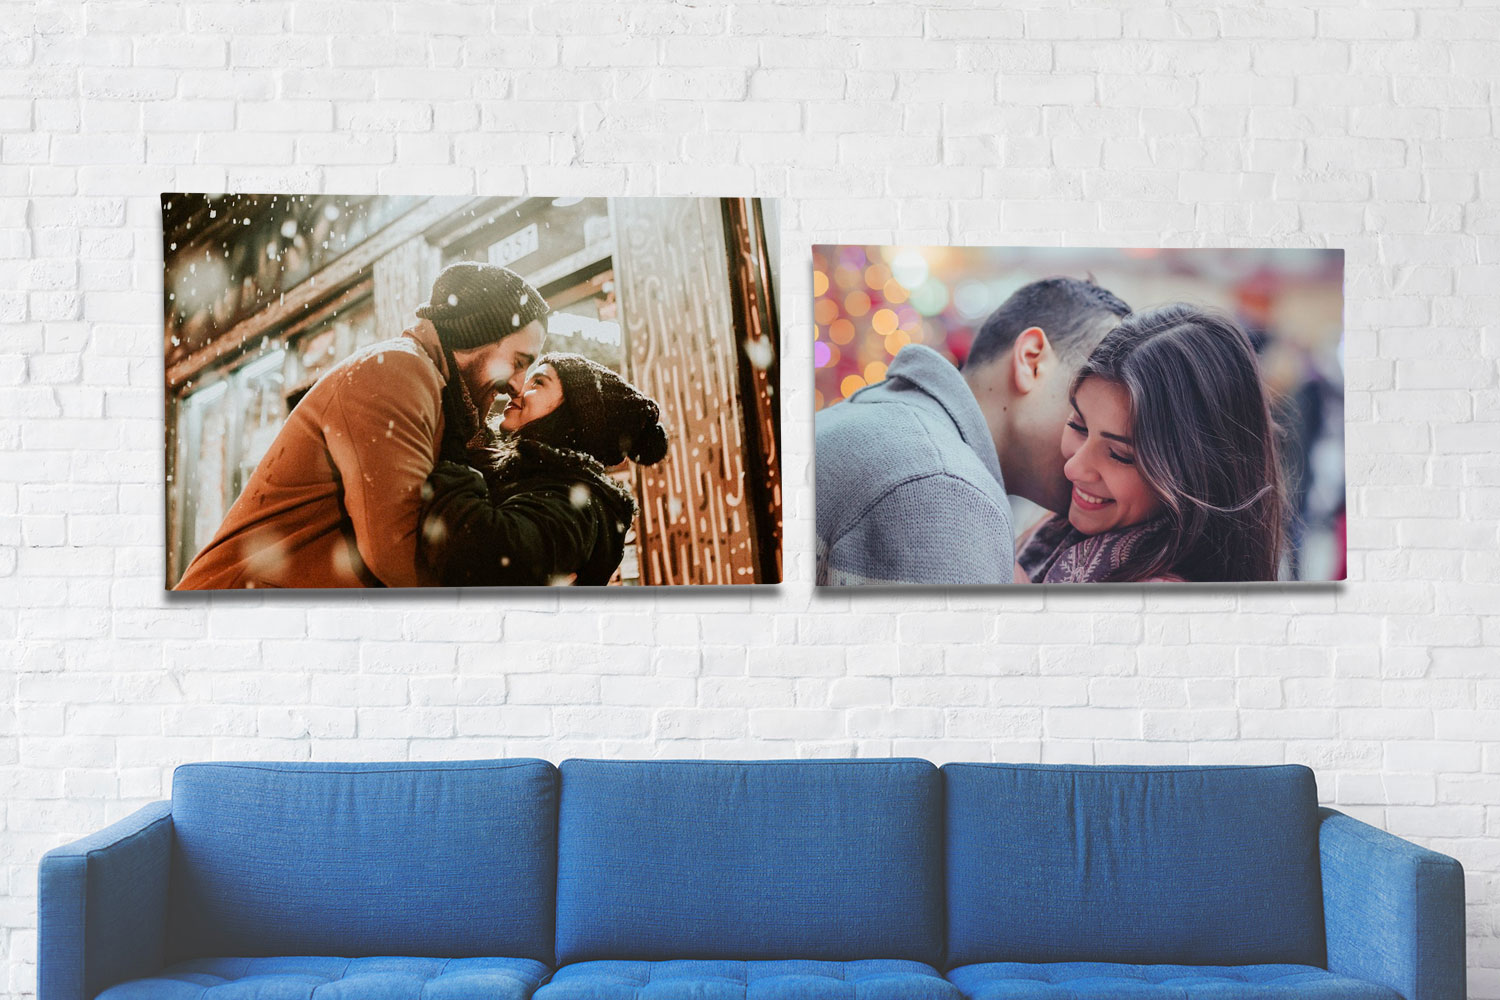 Best anniversary gifts for your wife - Photojaanic